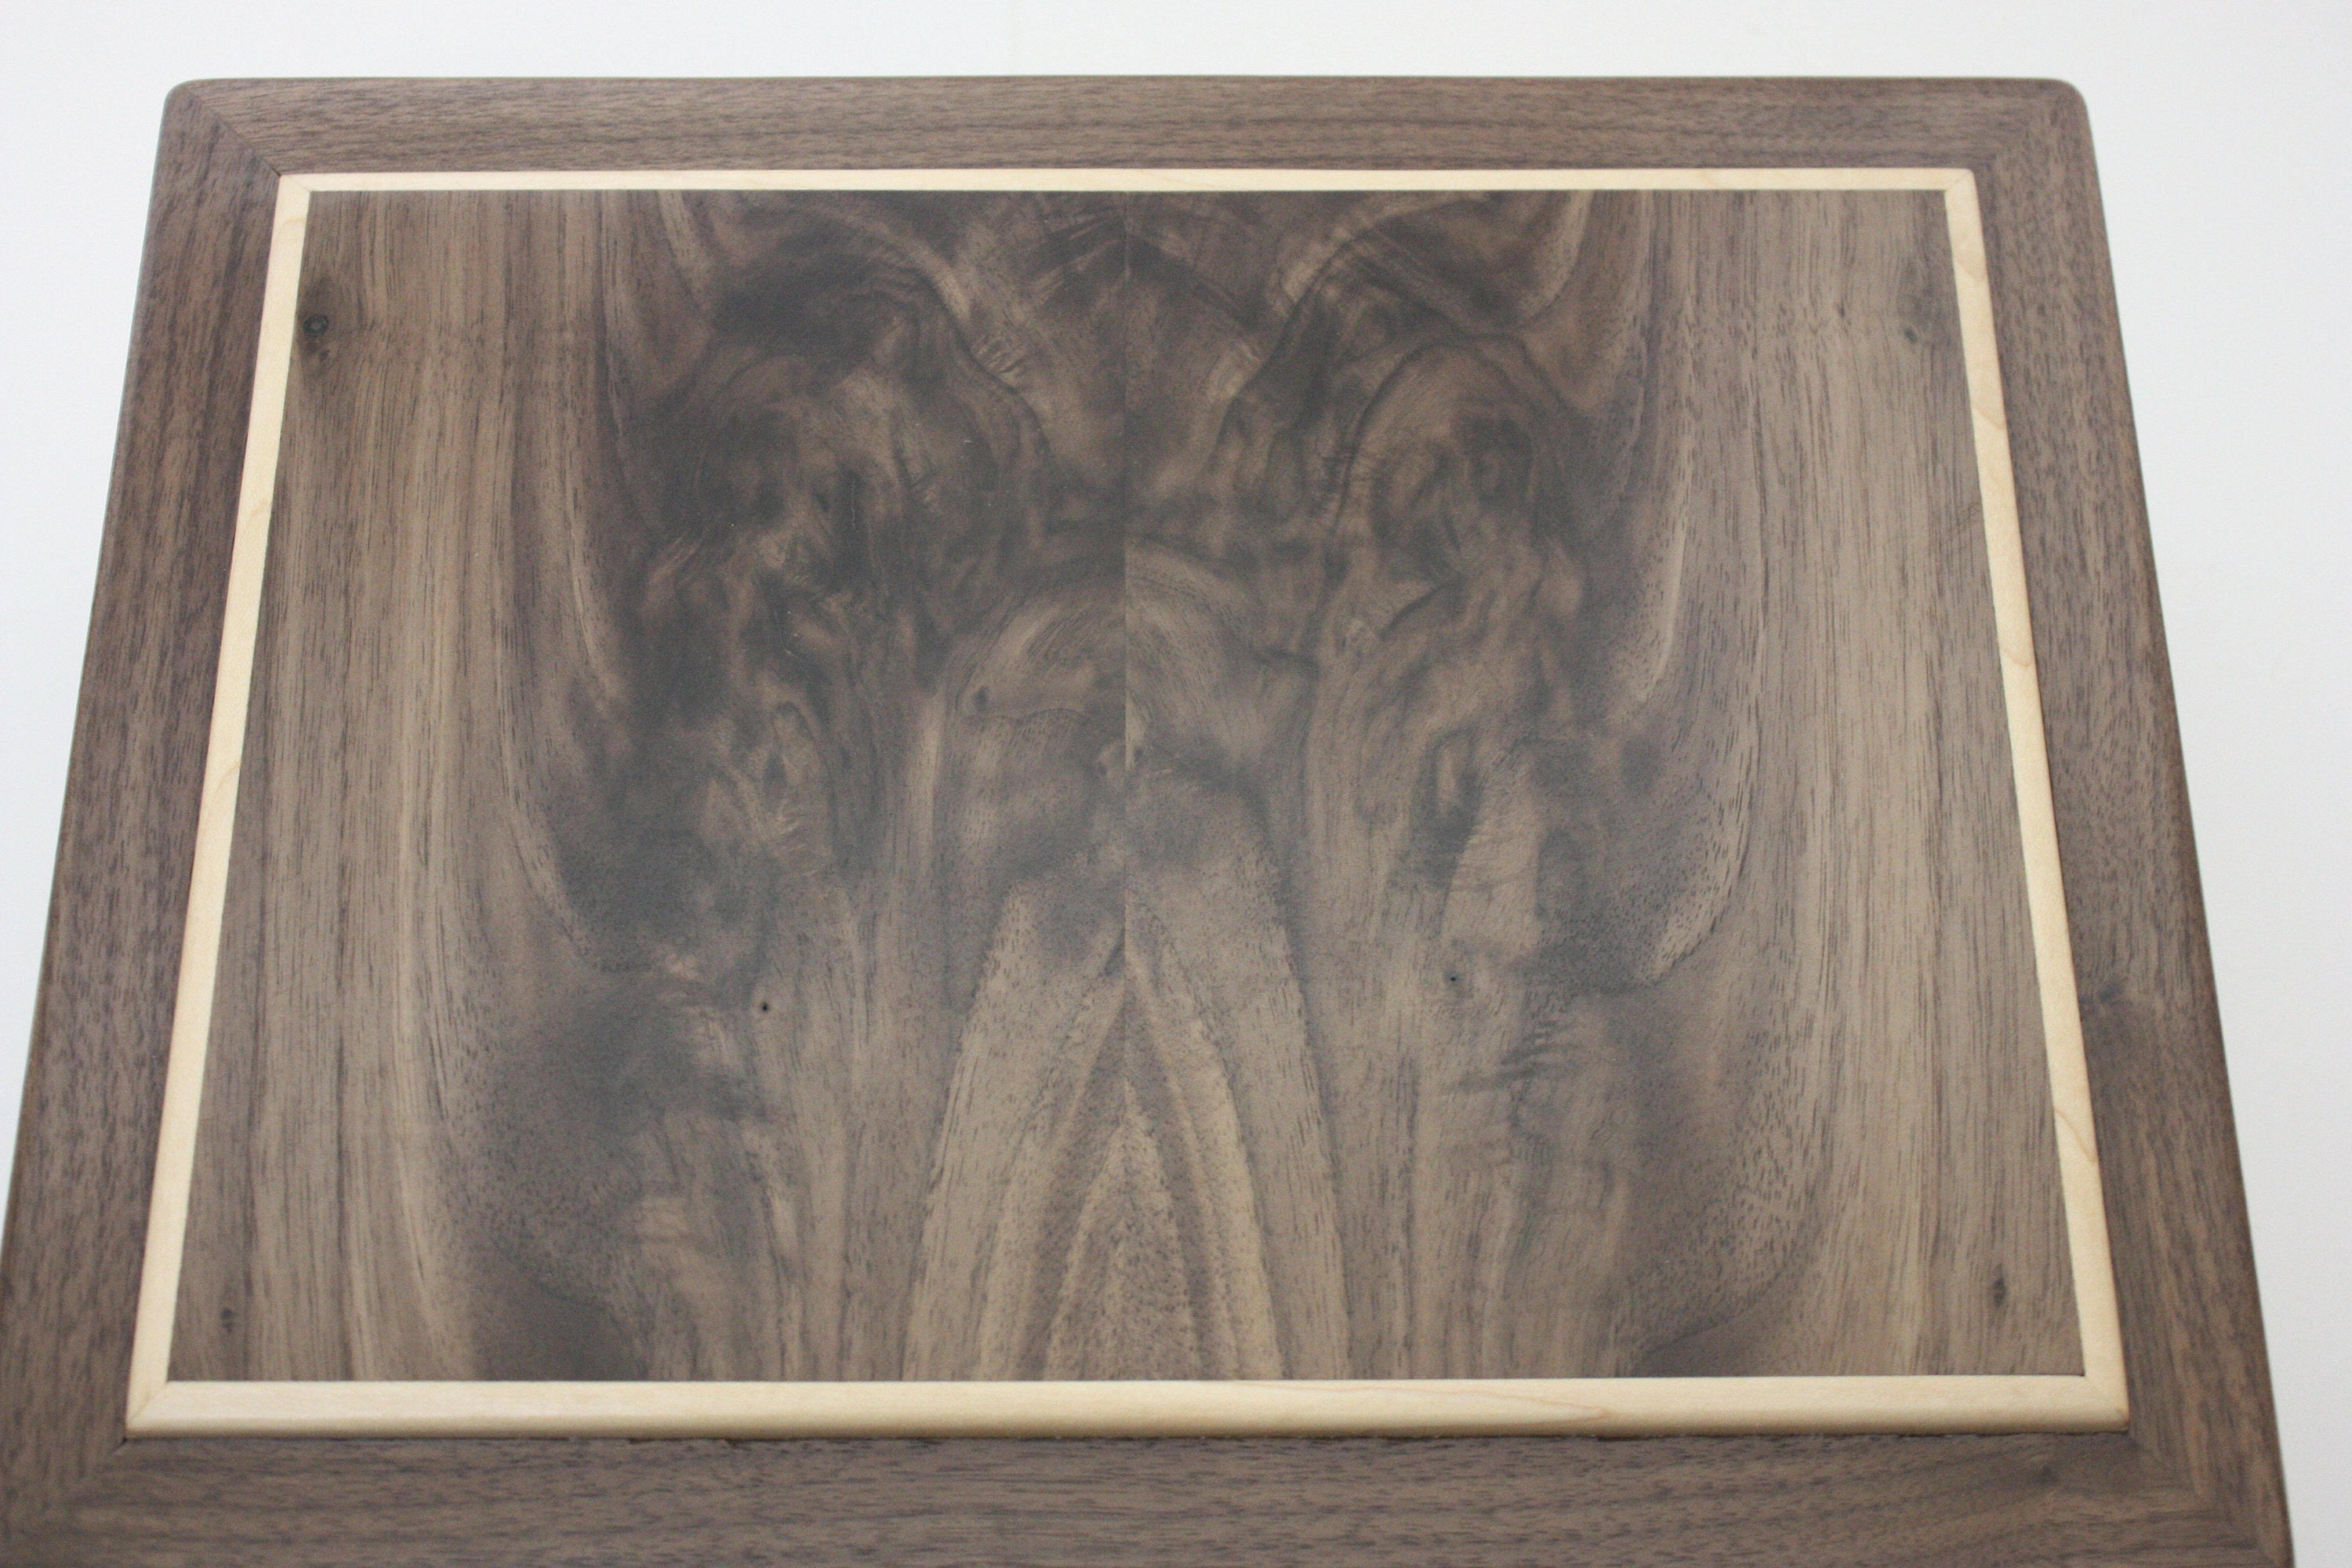 Book-Matched Black Walnut Lid on a Wooden Box